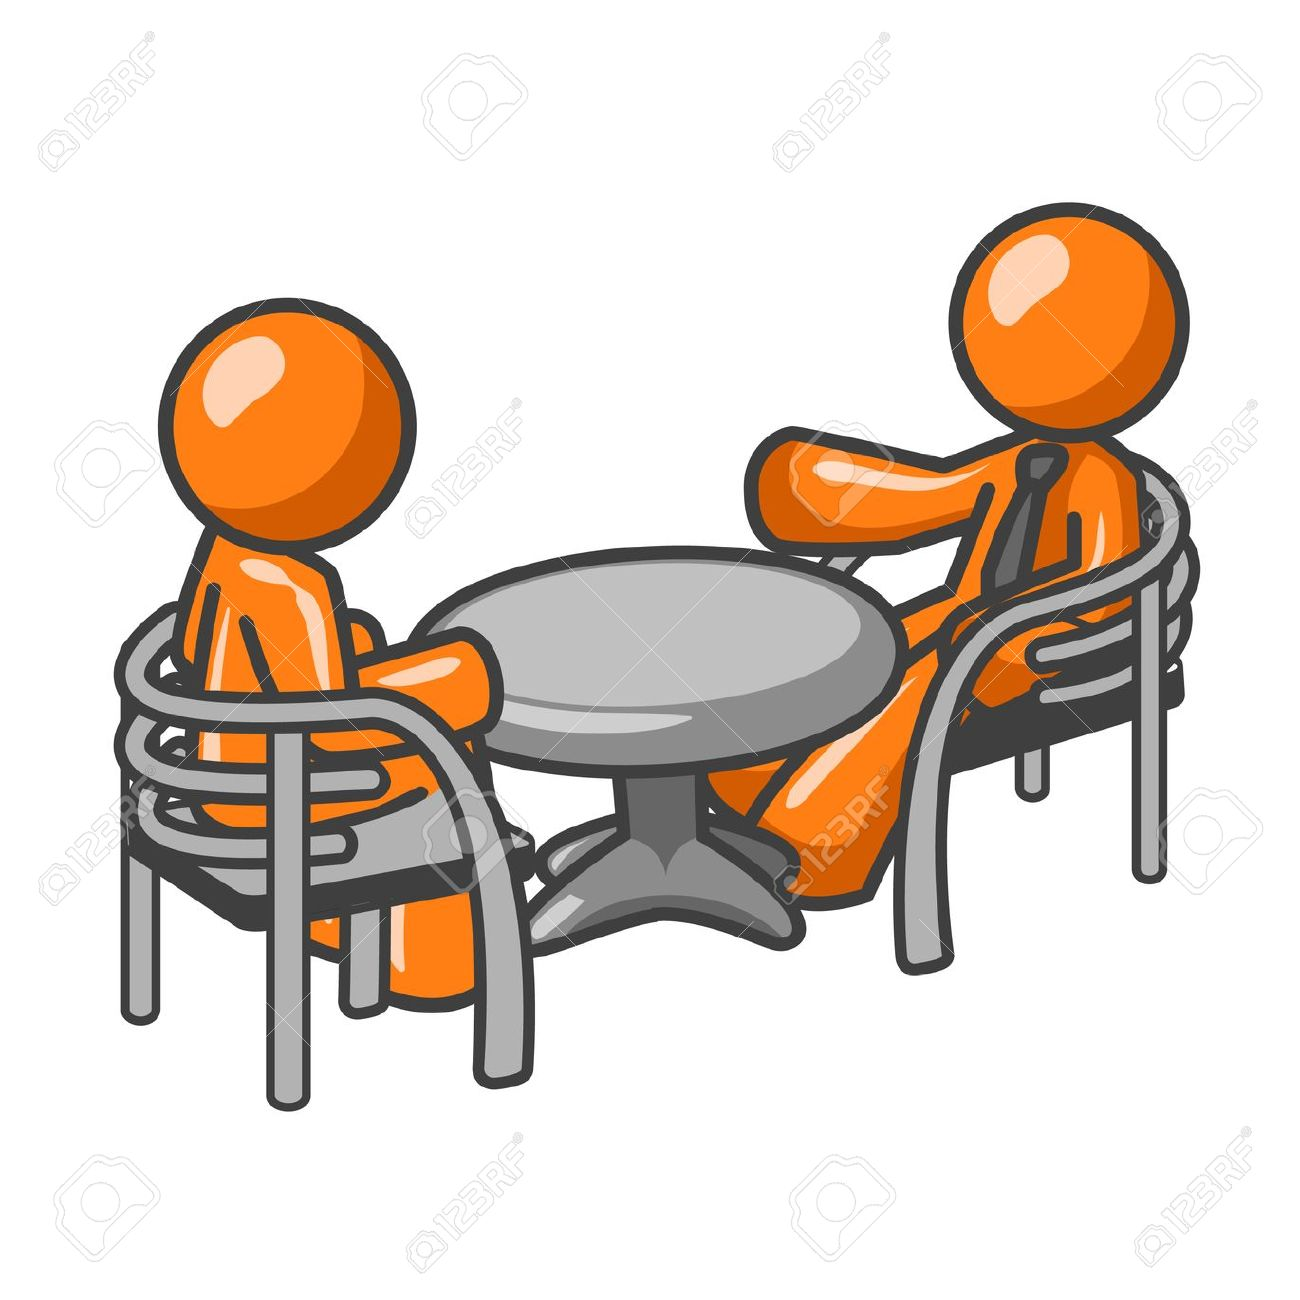 Old Man Sitting At Table Clipart.